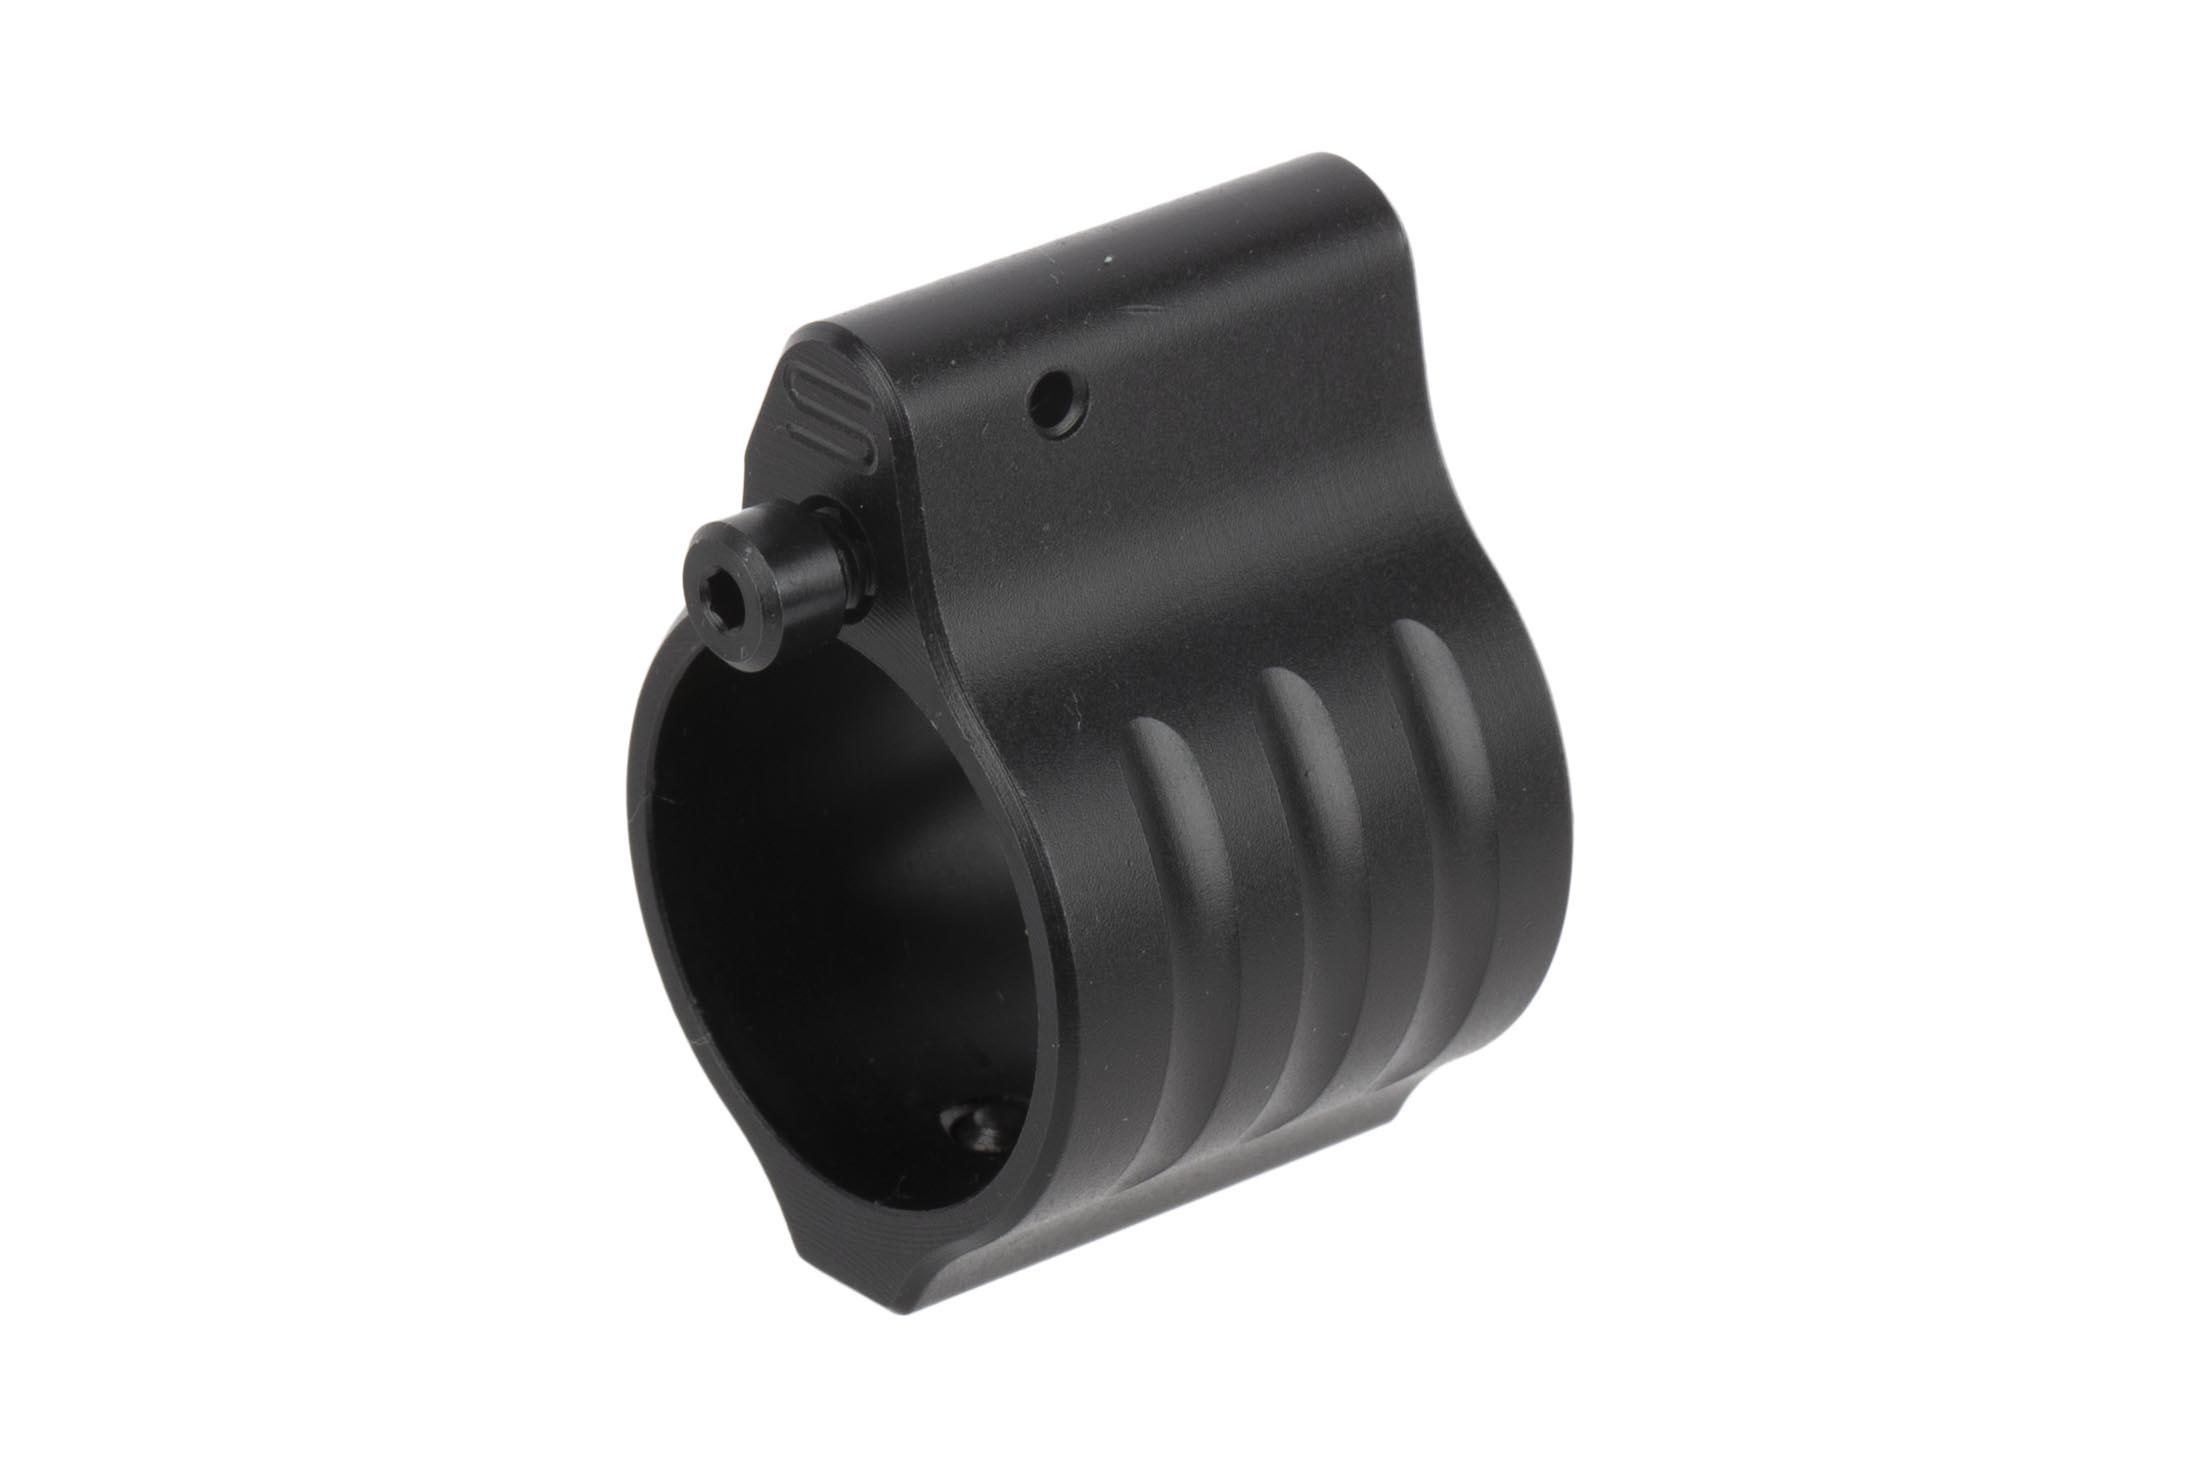 The SLR Rifleworks Sentry 8 set screw adjustable gas block has a Melonite finish